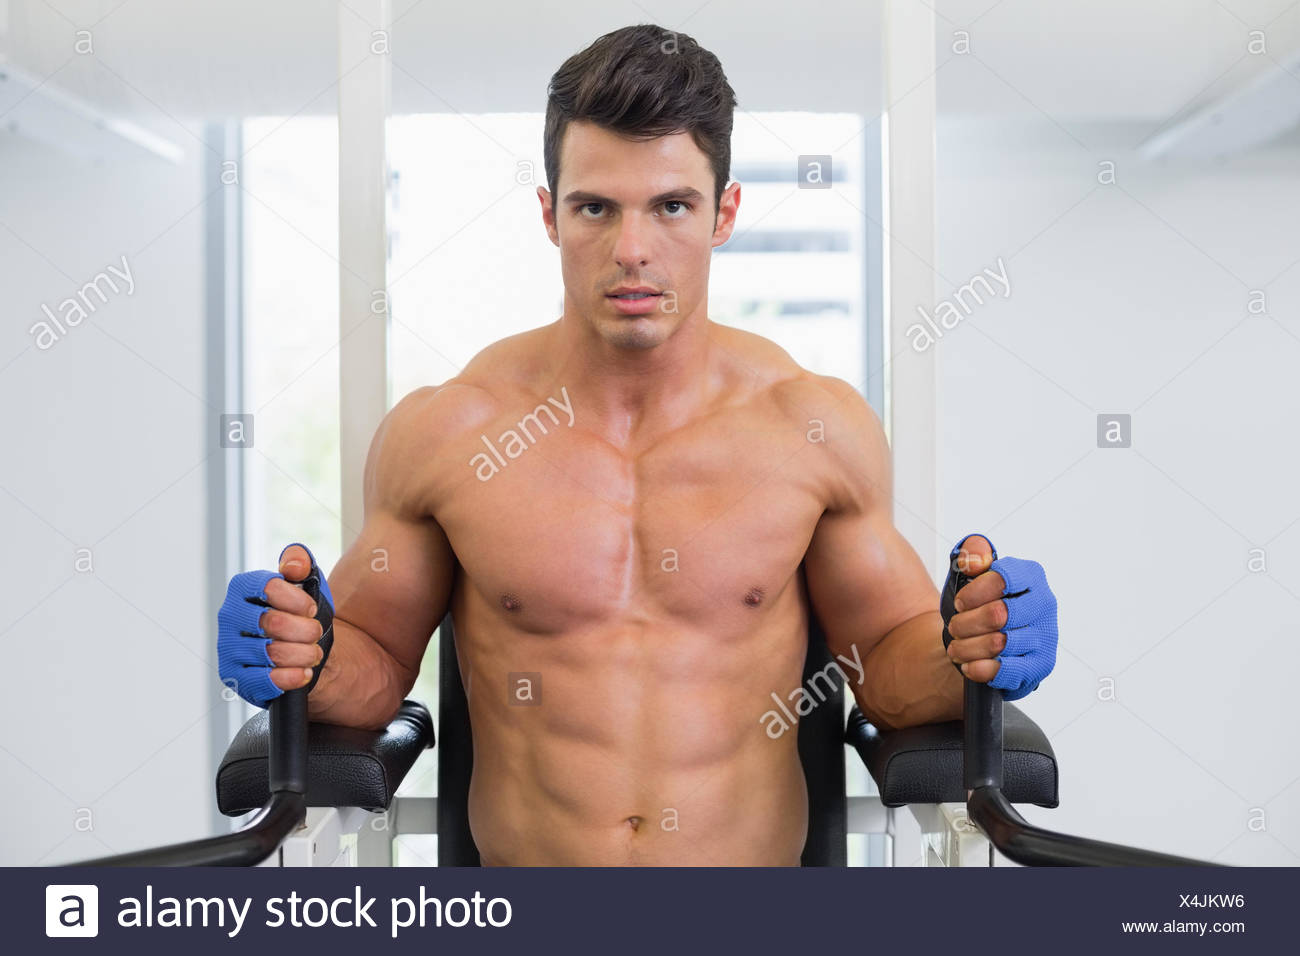 Muscular man doing crossfit fitness workout in gym - Stock Image